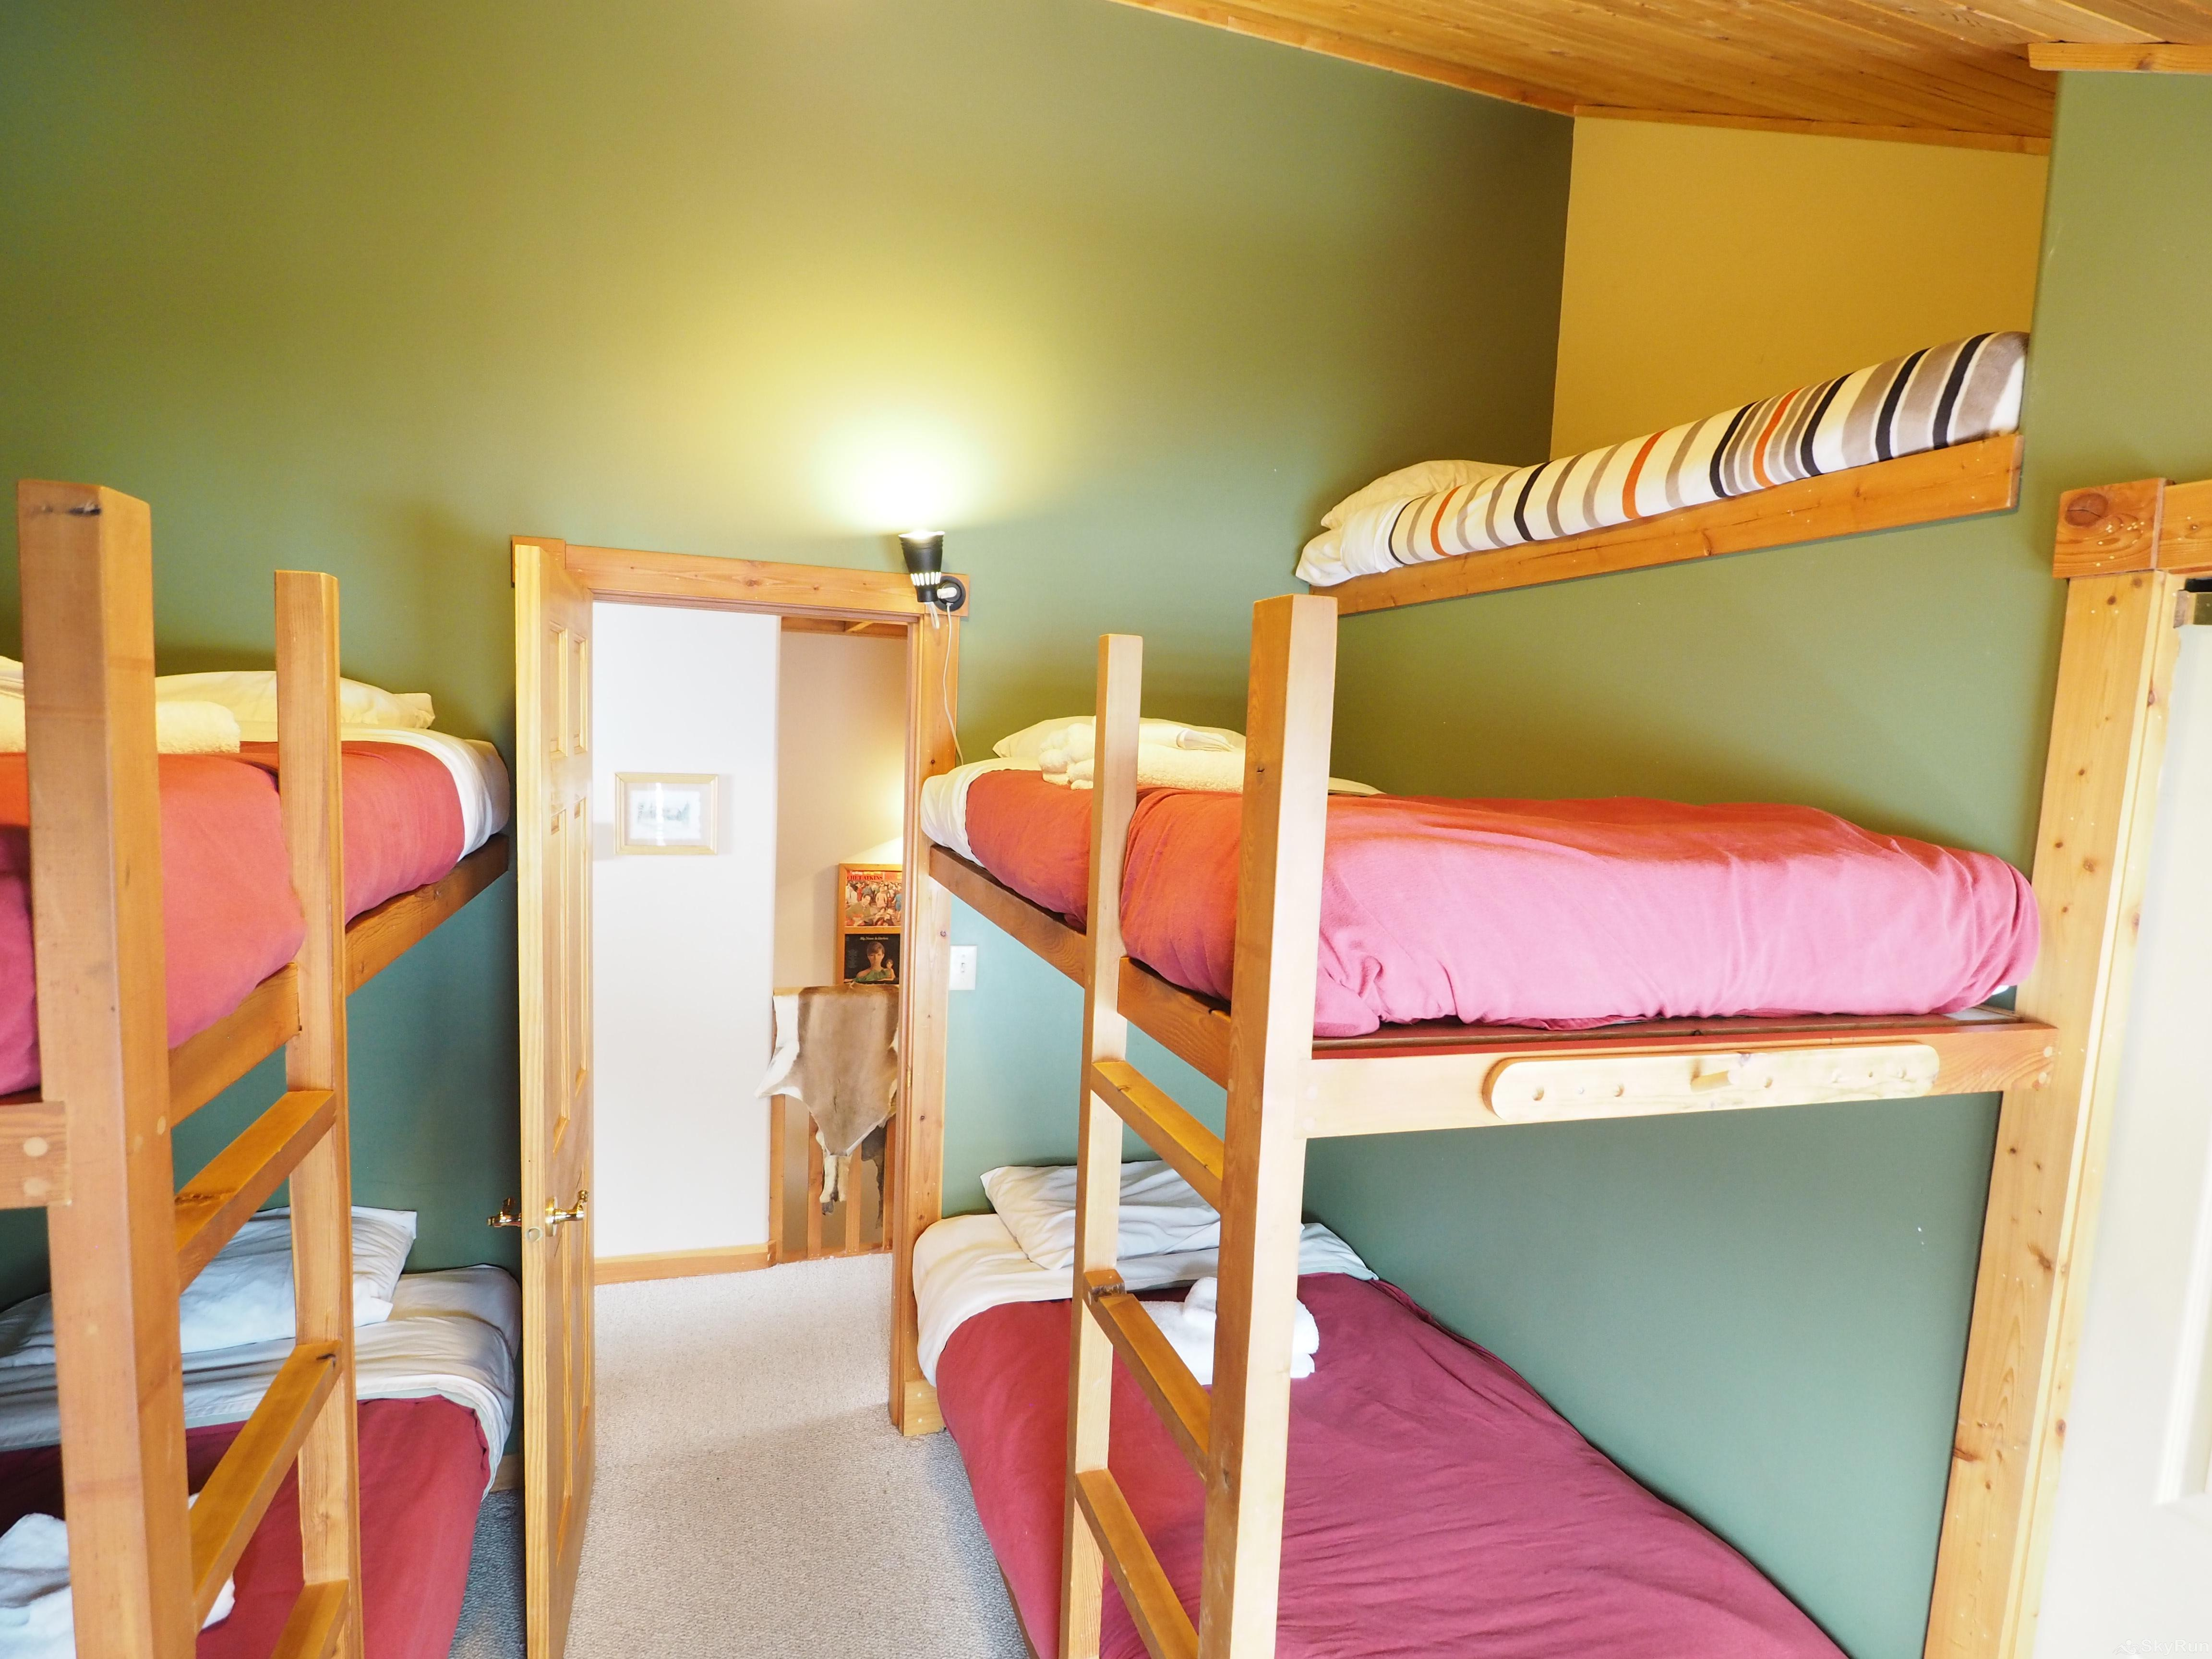 Wildside at Apex The bunk room - 4 full size twin beds plus a mini twin bed up top for a child